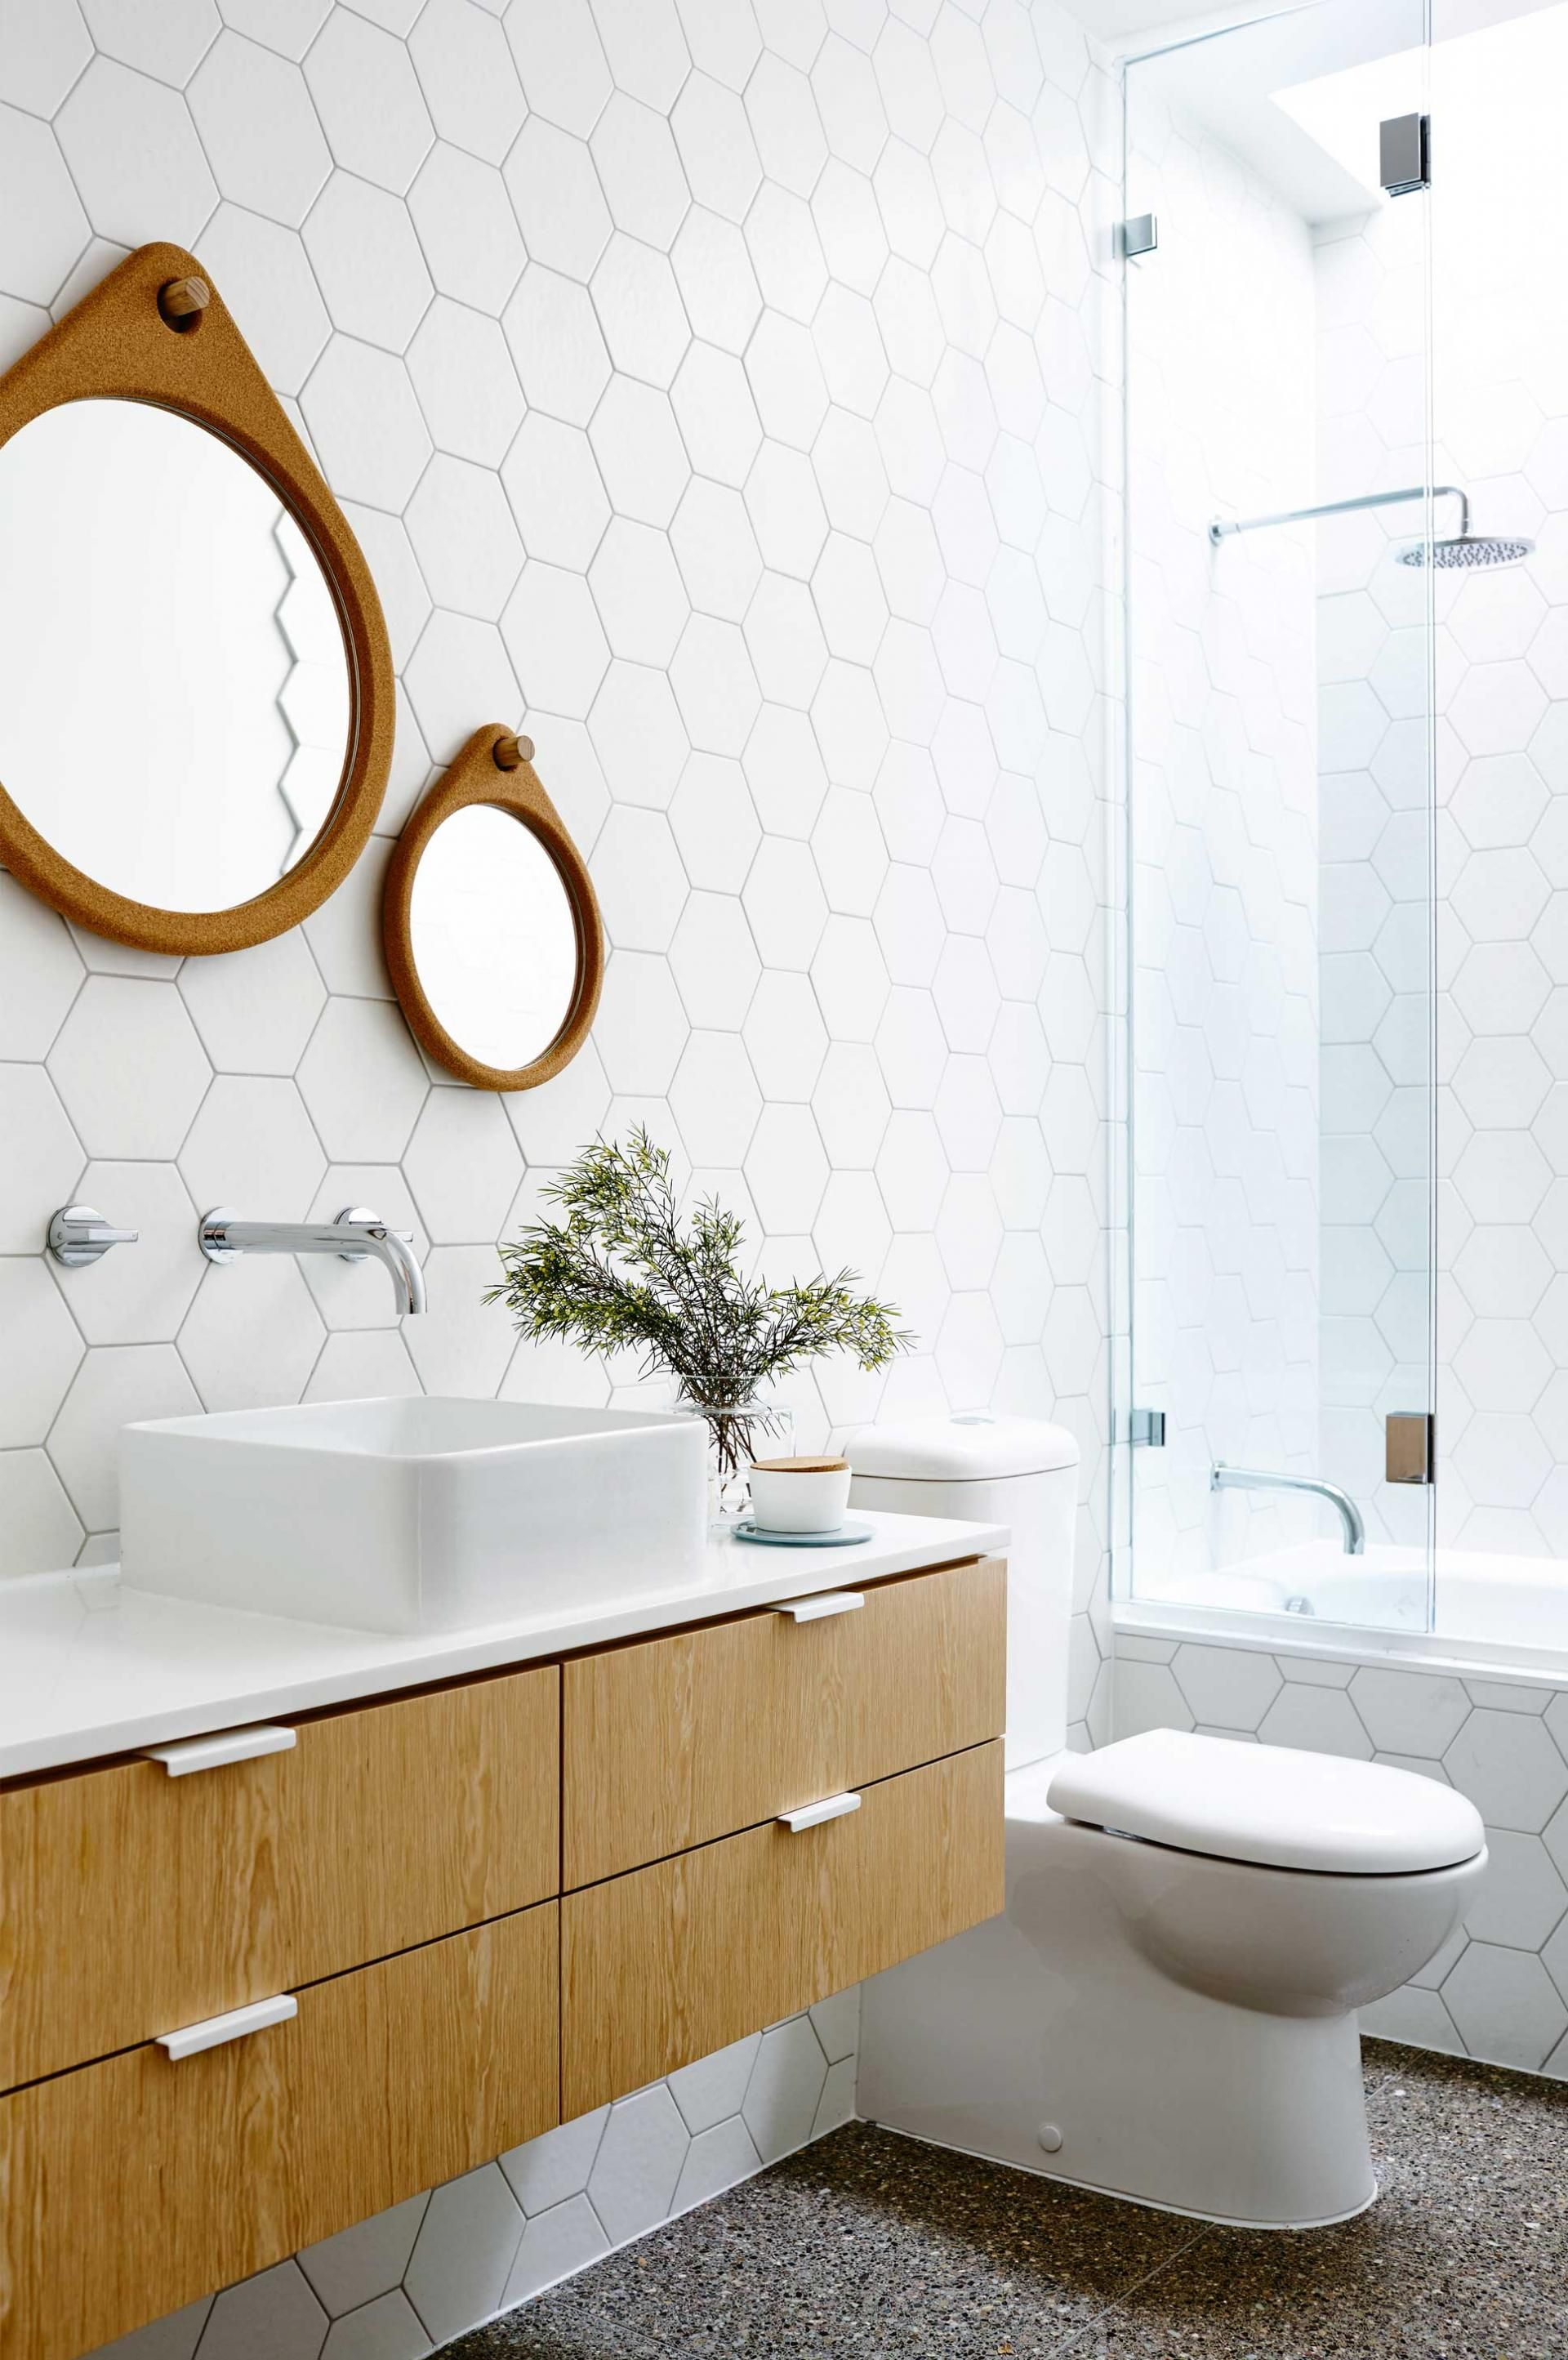 Large Hex On Wall Floating Vanity Vessel Sink Wall Mounted